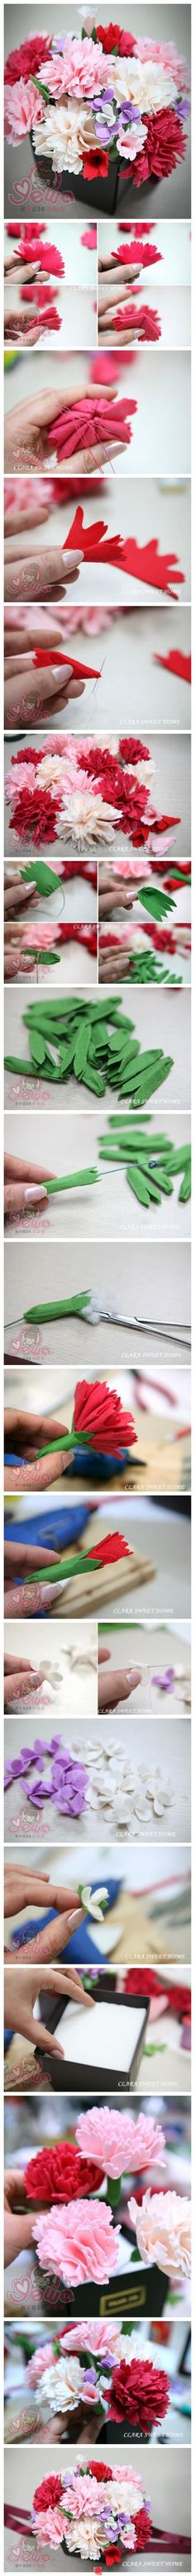 DIY Flowers From felt